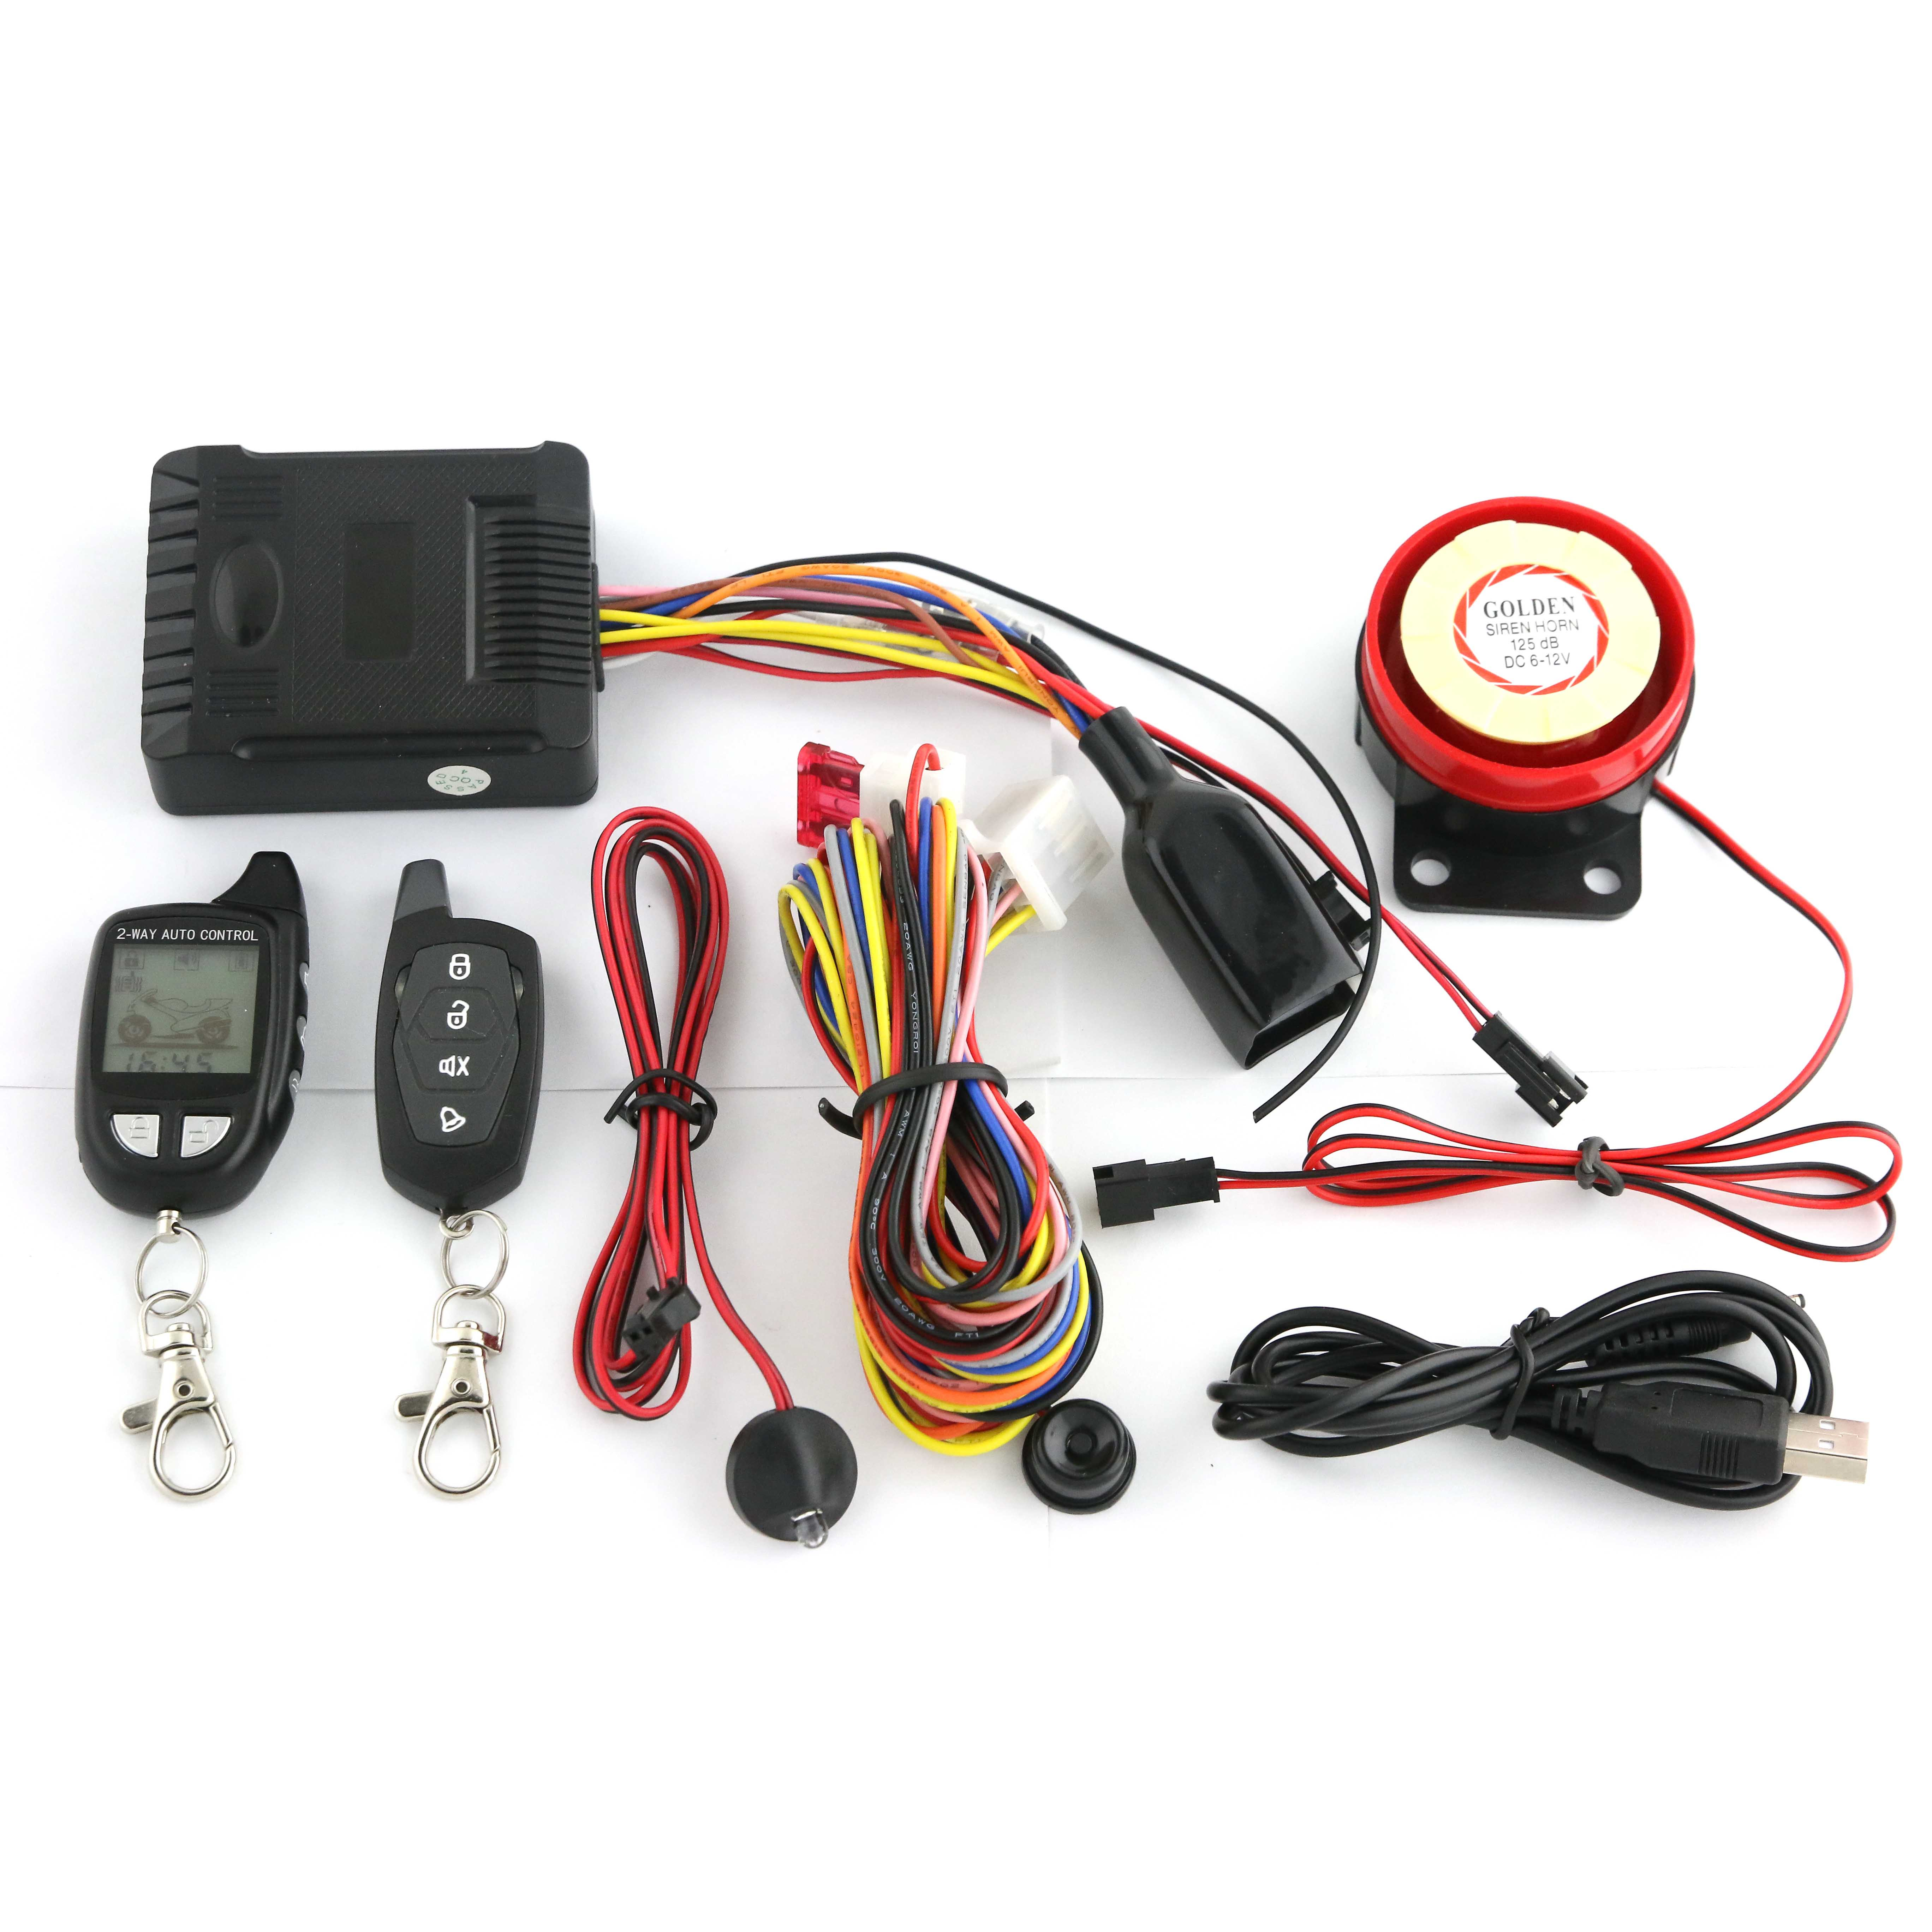 HUATAI 2 way 1500 meters motorcycle alarm with remote start <strong>shock</strong> warning <strong>HT</strong>-M09F